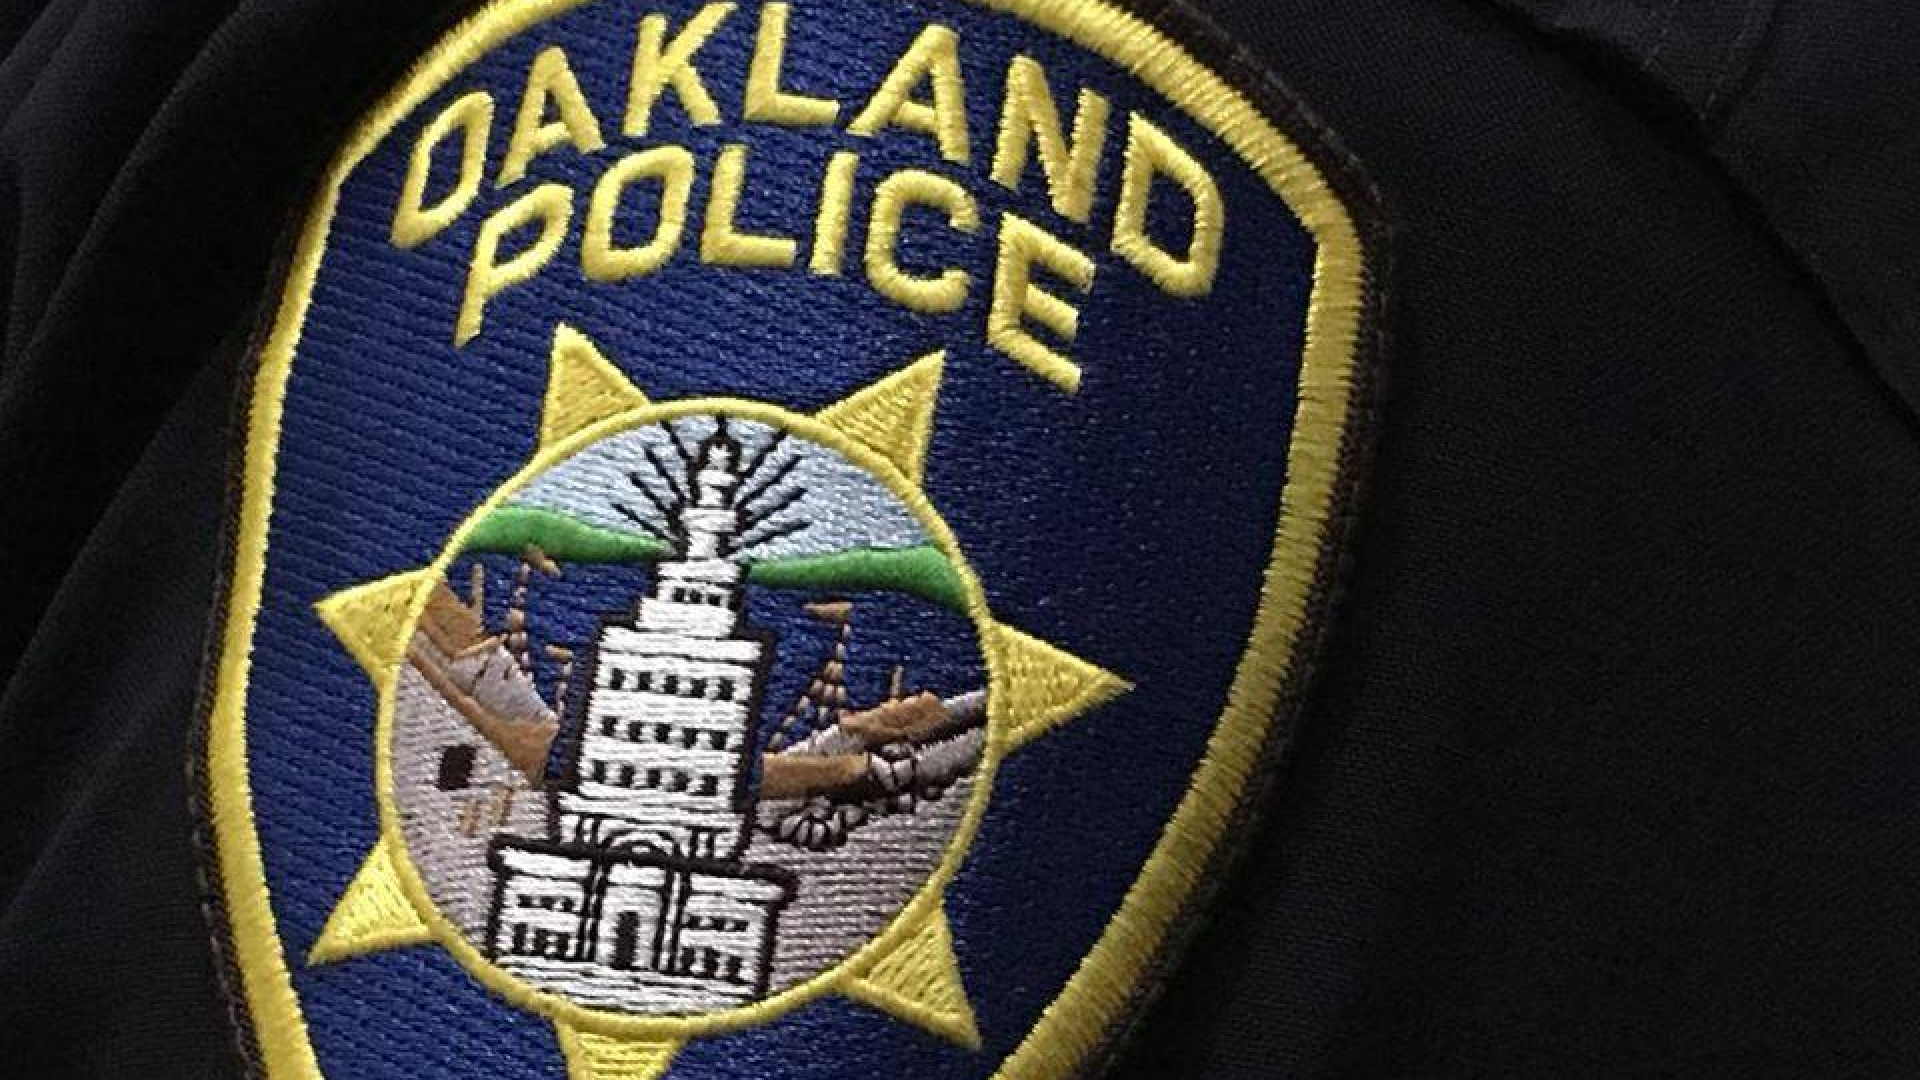 This file photo shows an Oakland police uniform patch. (Oakland Police Department/Facebook)